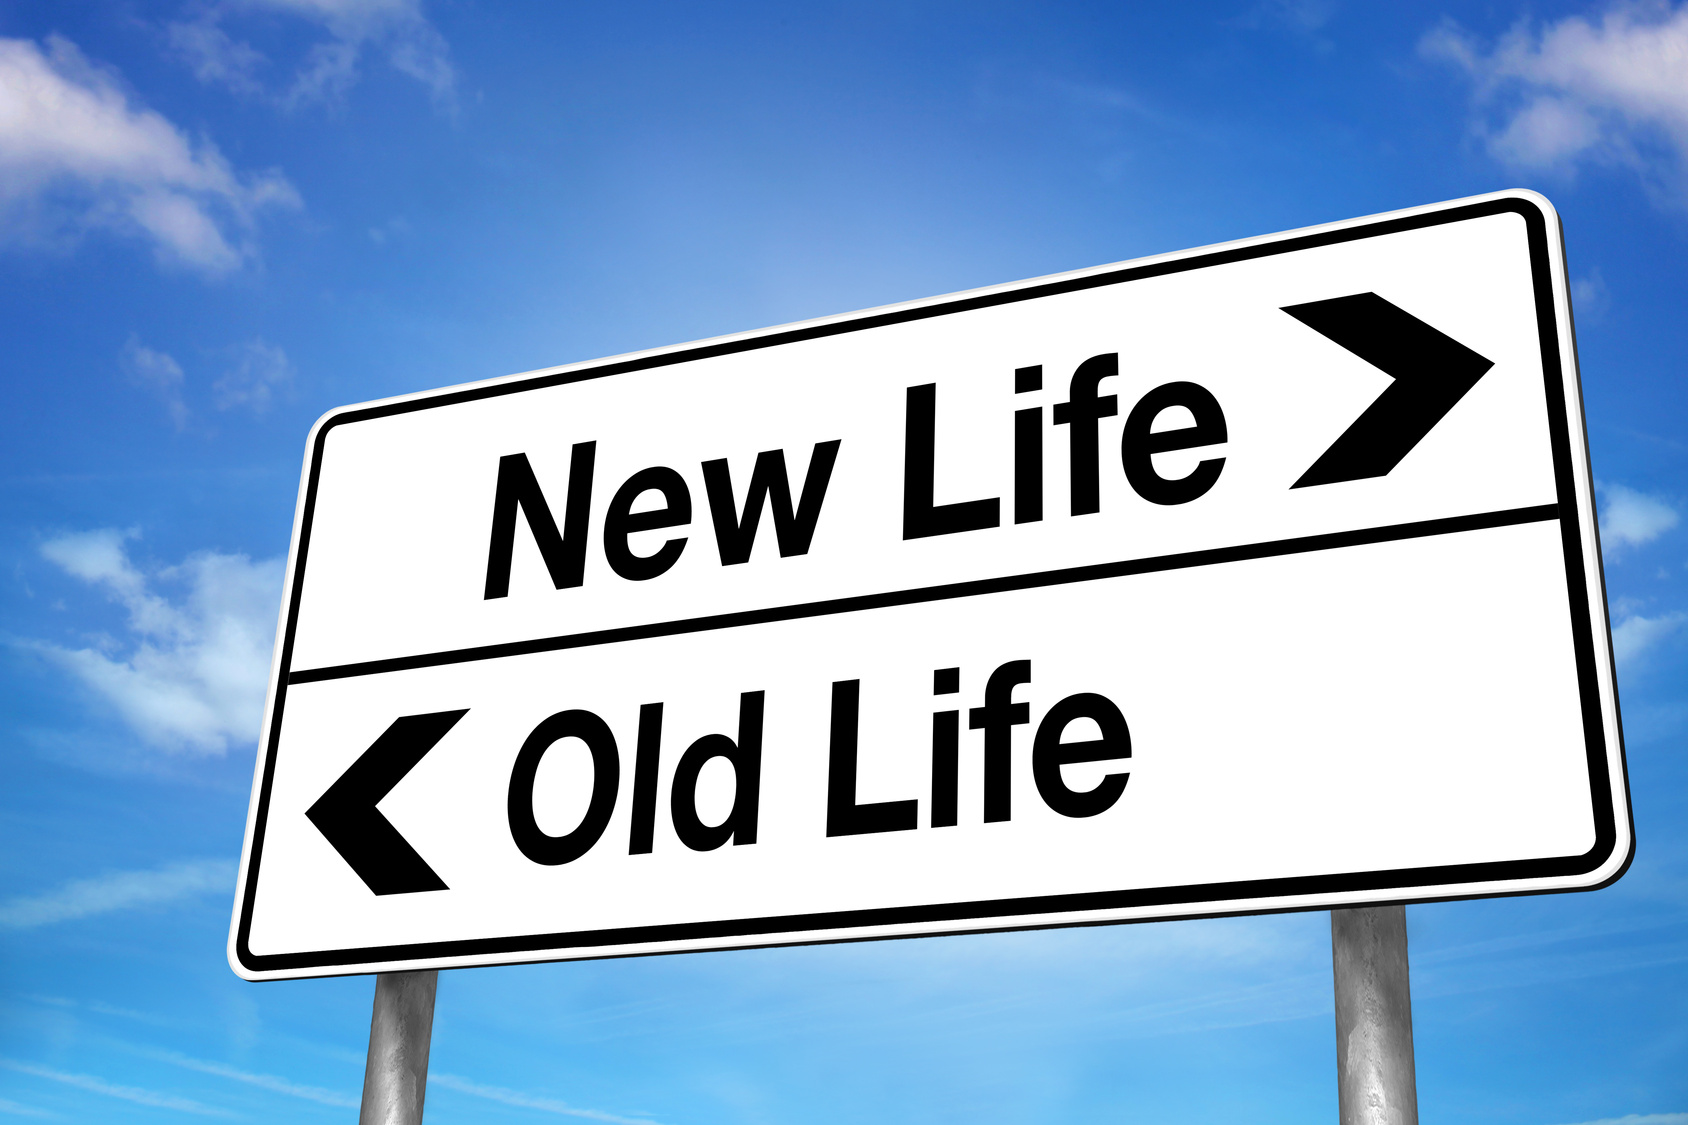 New Life, Old Life Sign 111.57 Kb